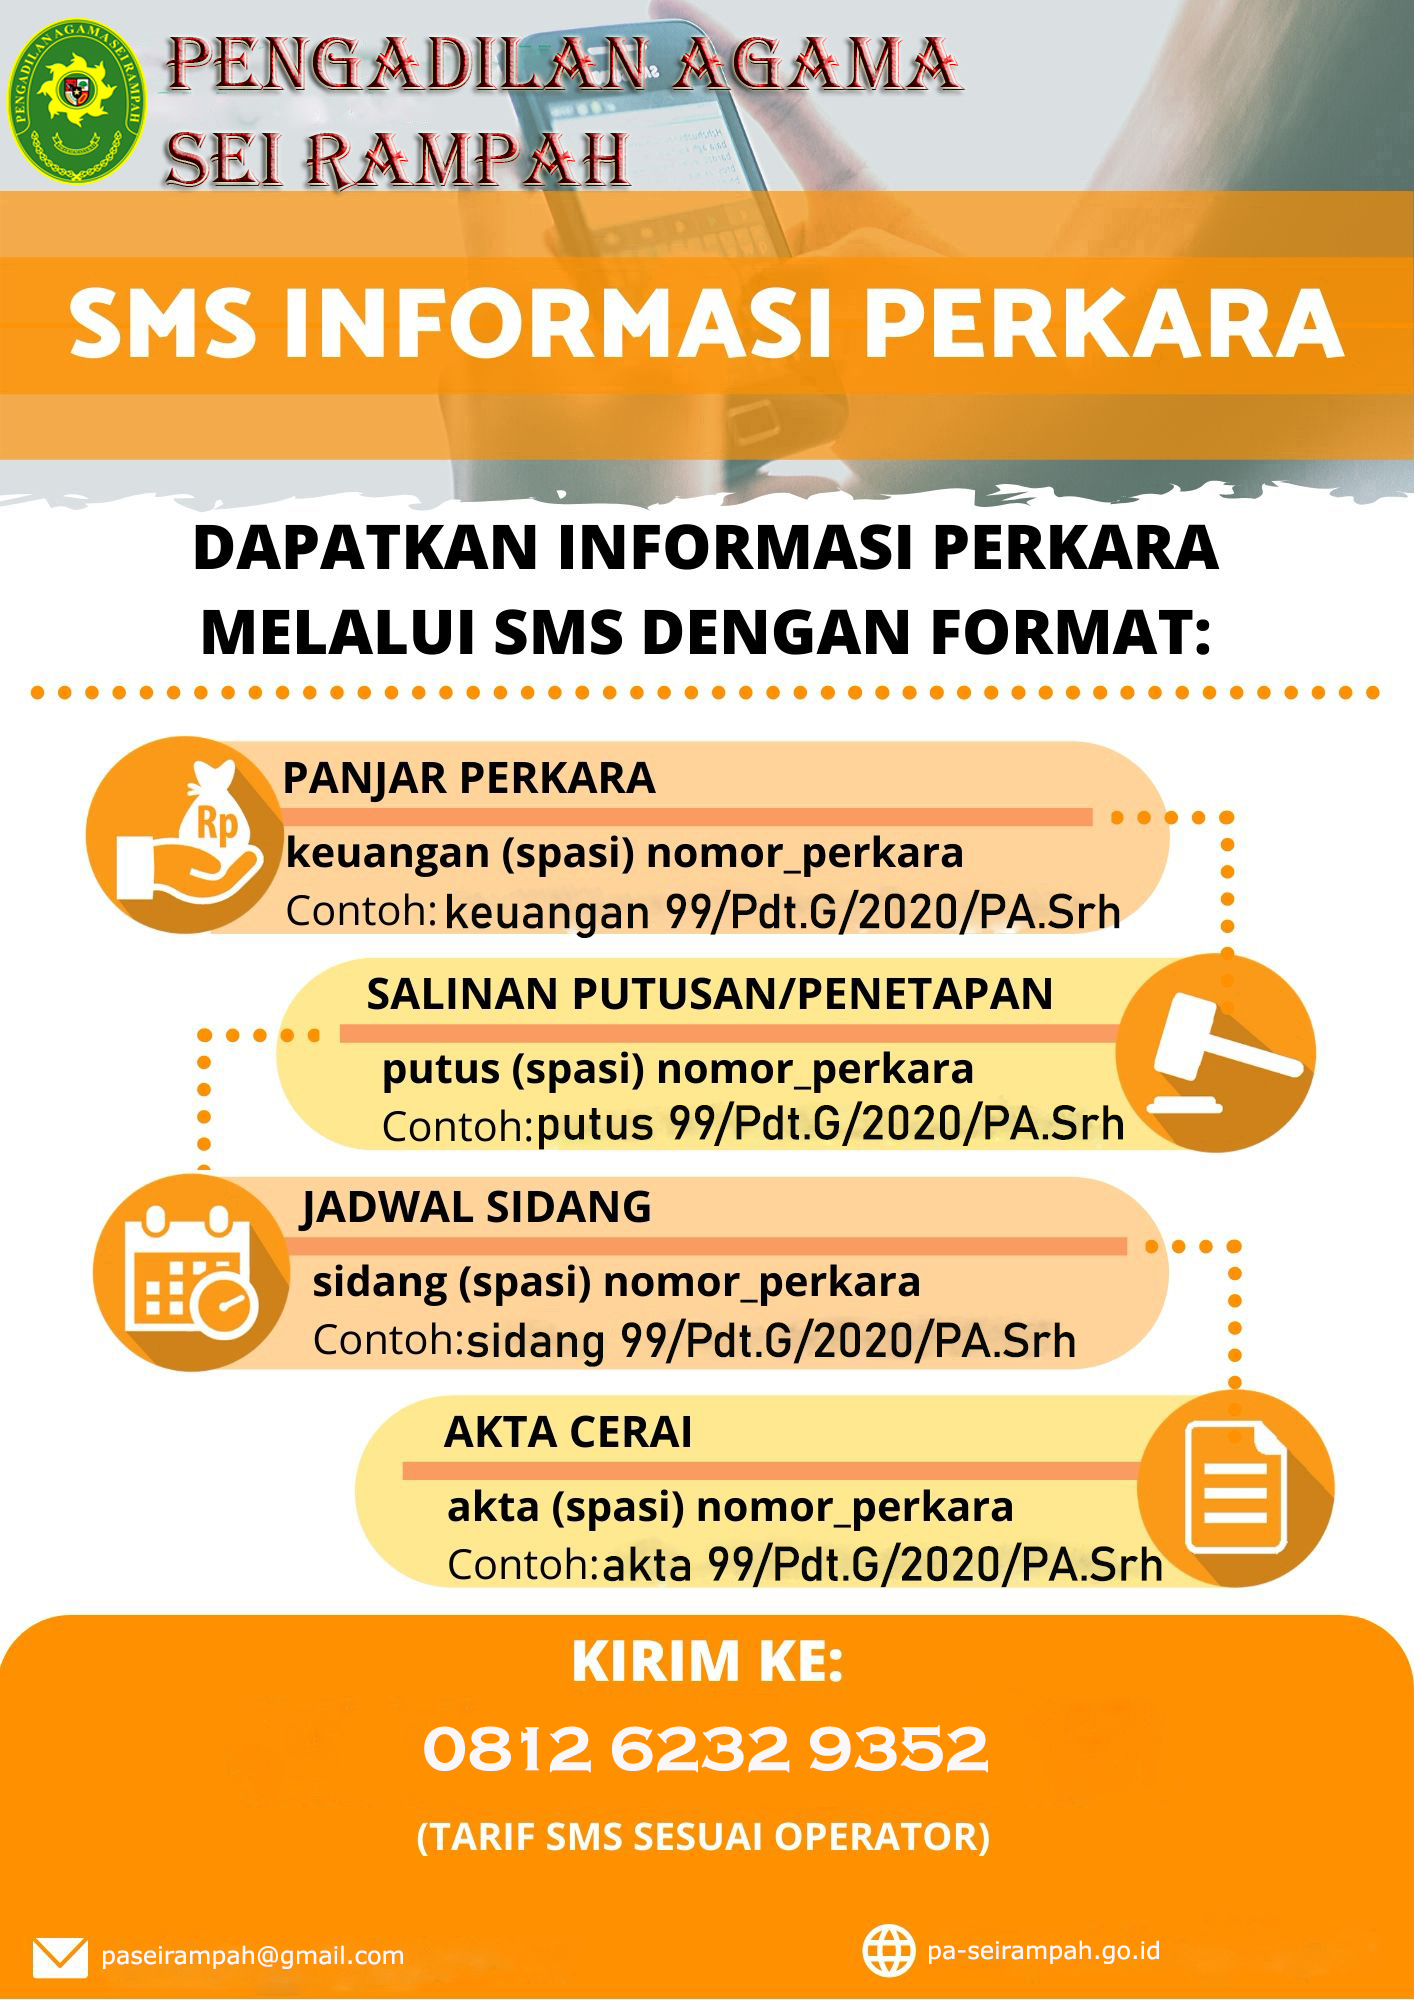 sms seirampah real